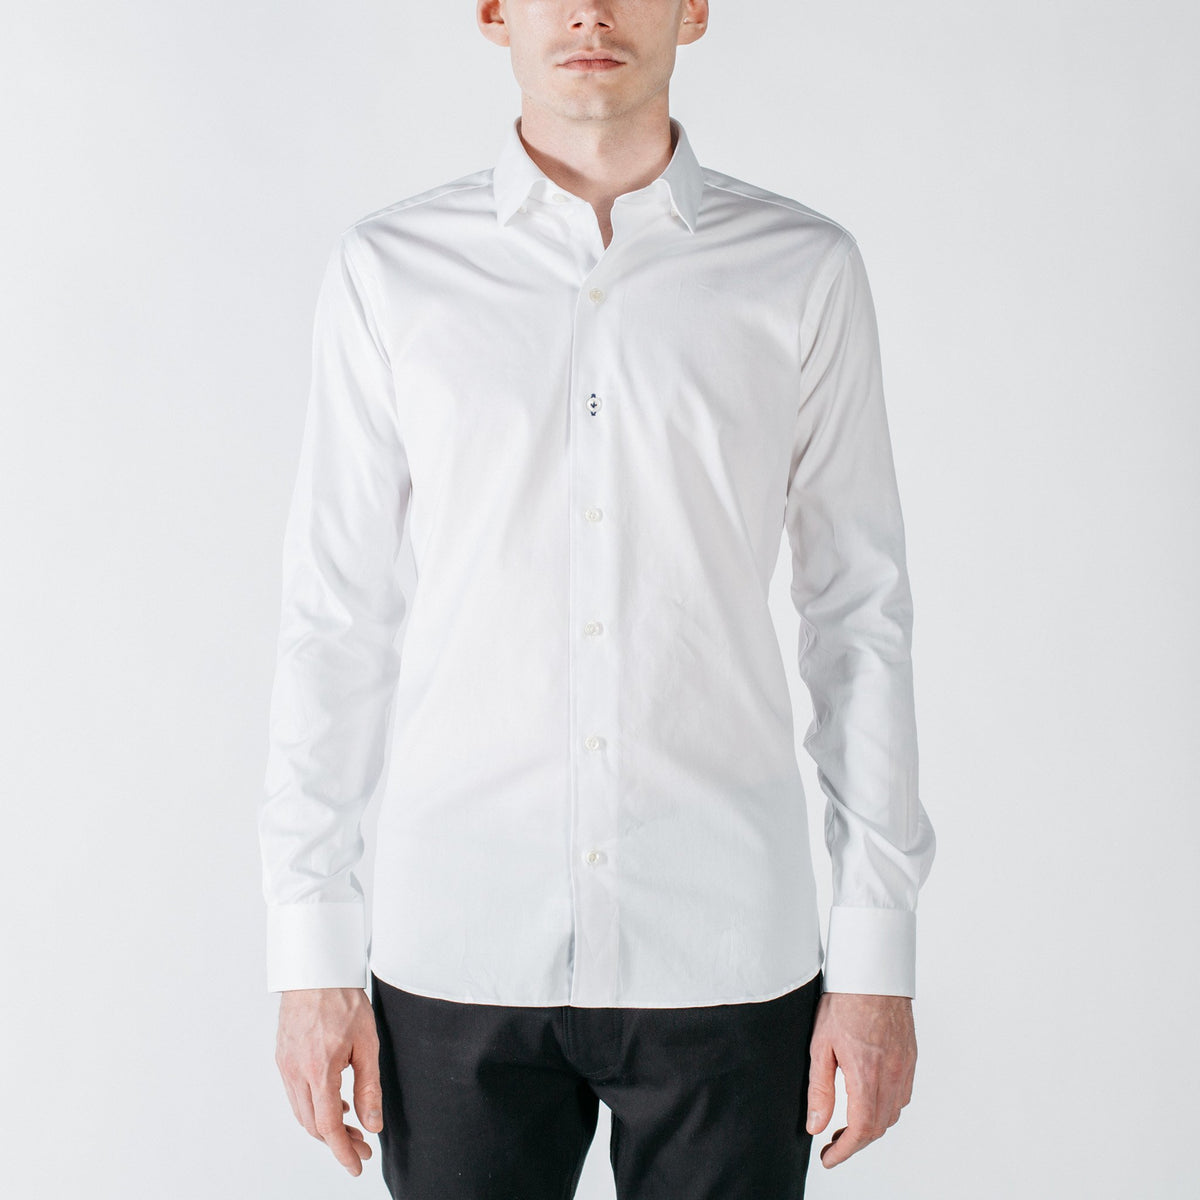 CORE // White Shirt